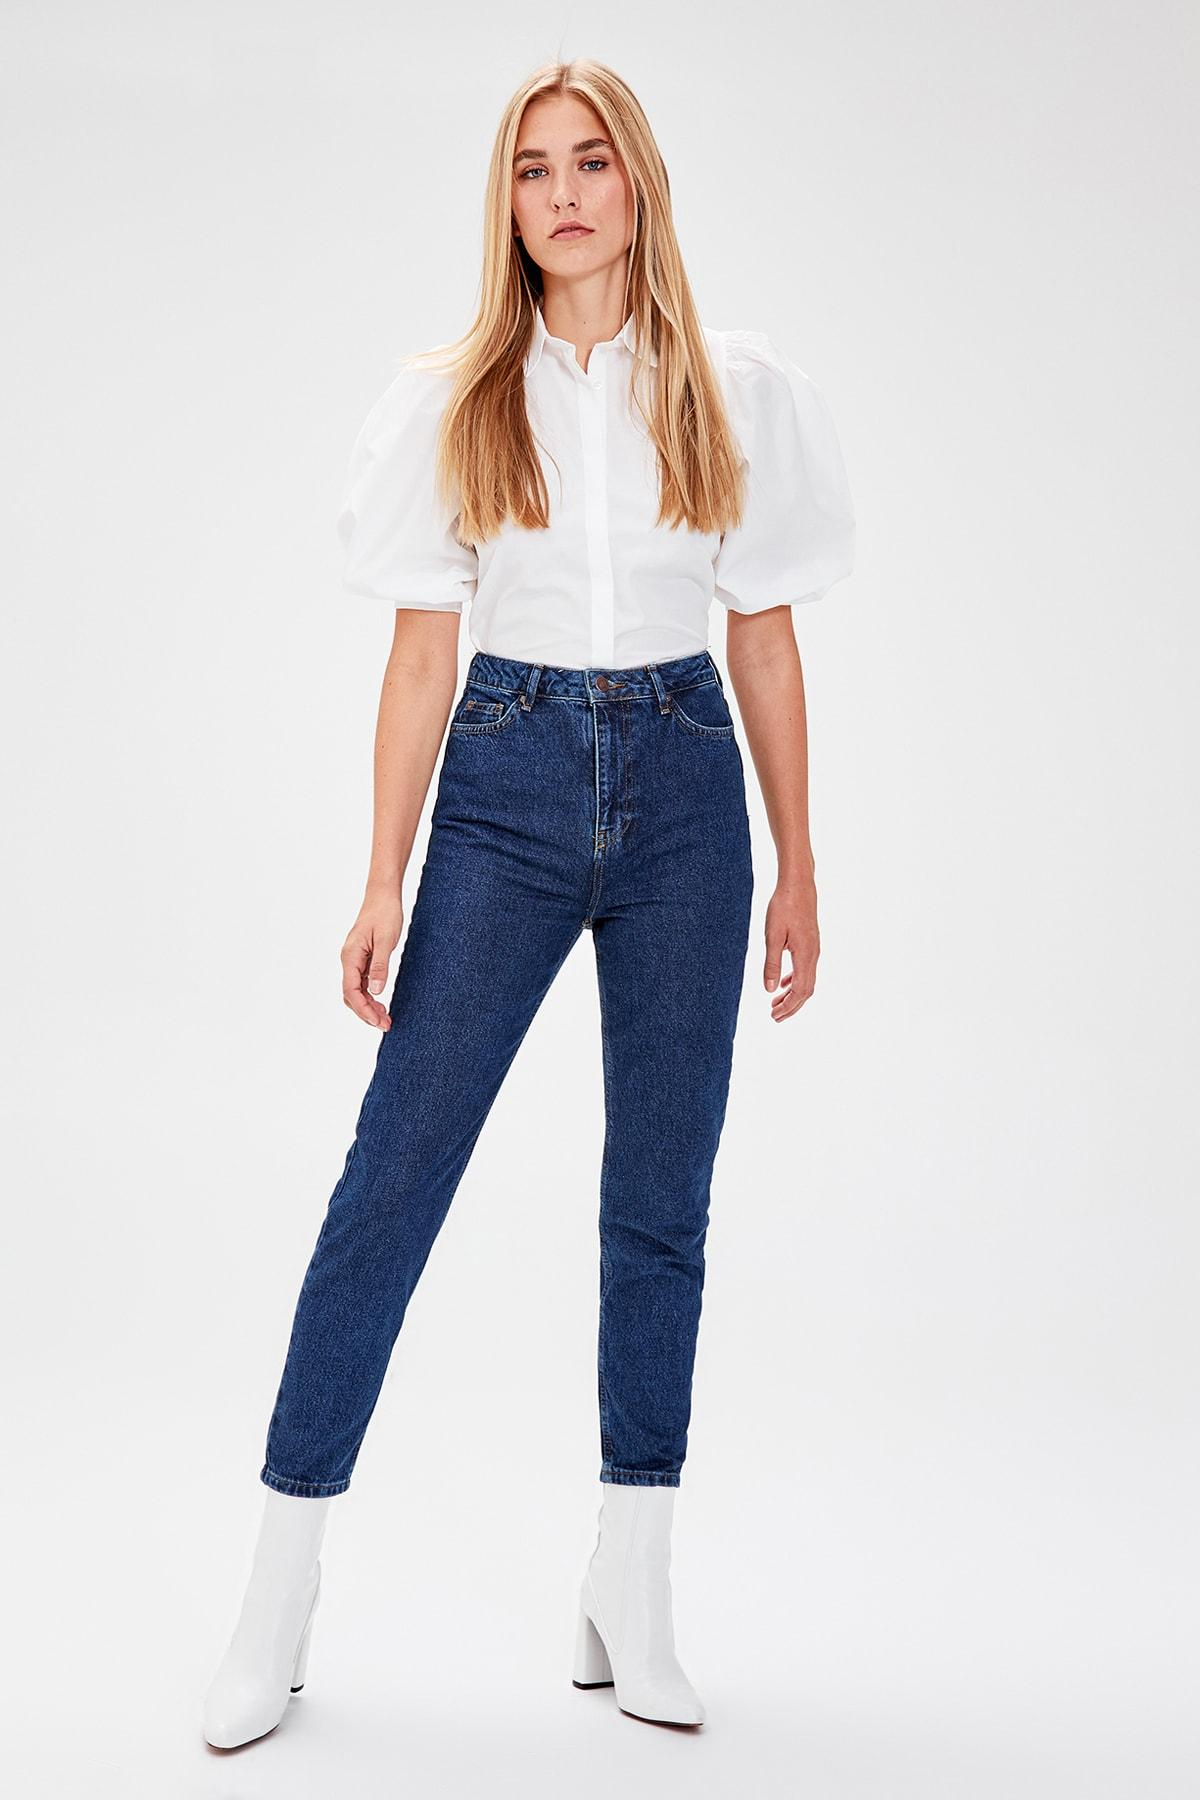 Trendyol Navy 2014basic High Waist Mom Jeans TWOAW20JE0052